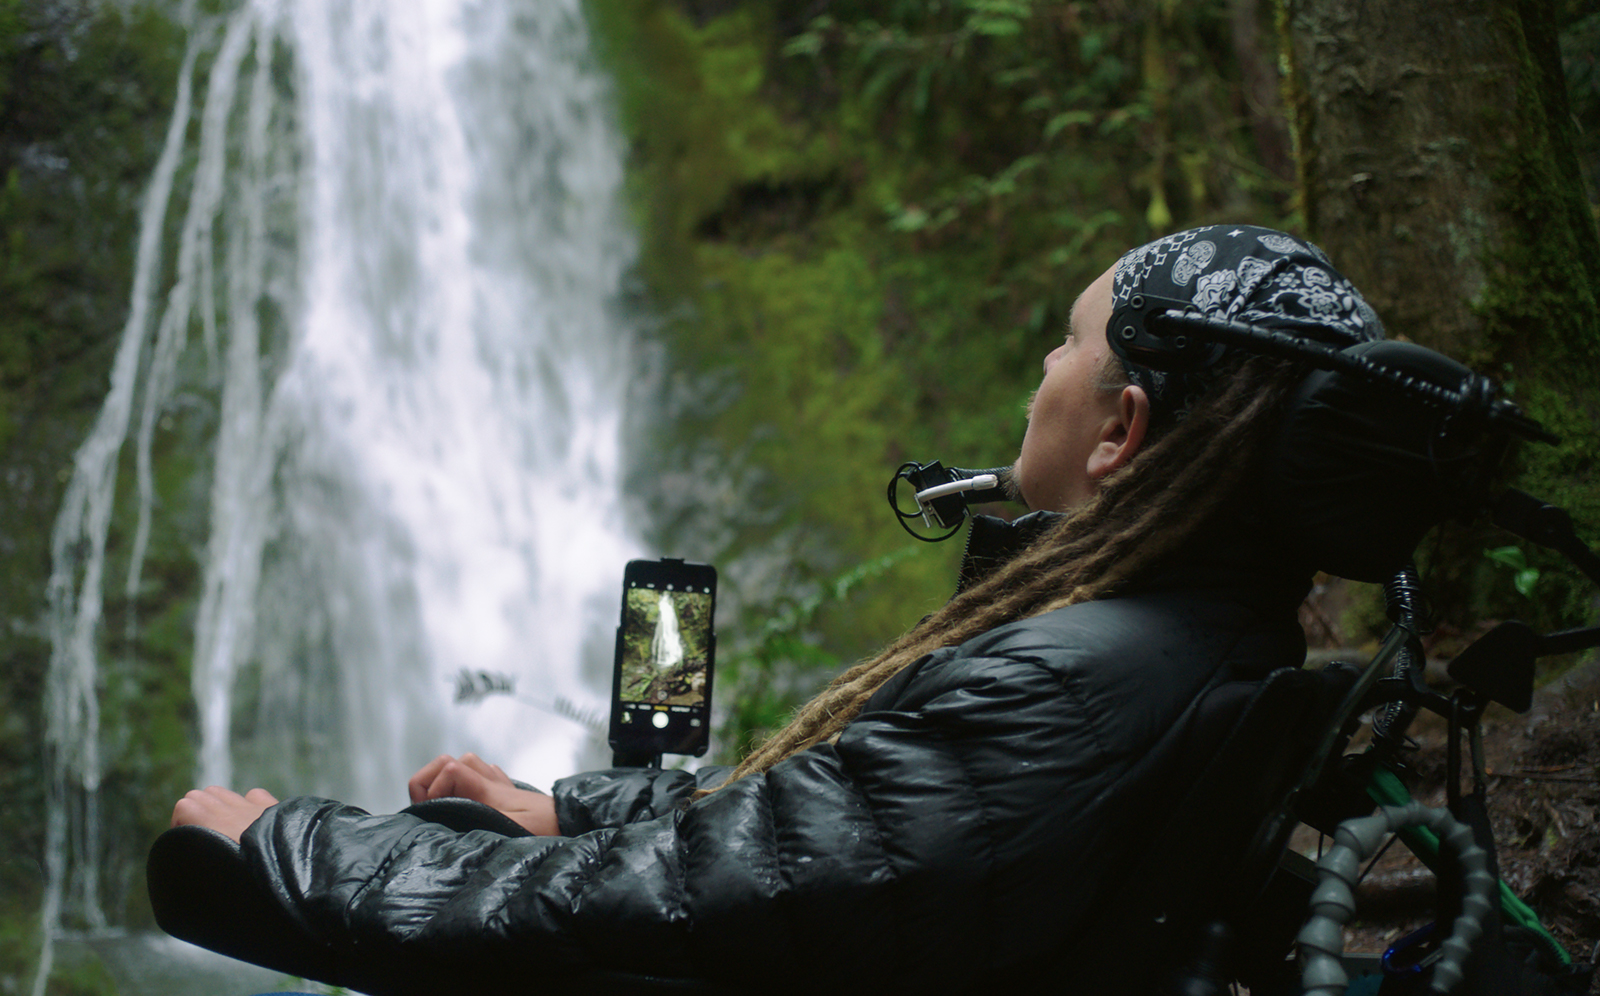 In front of a waterfall, a man in a wheelchair uses Switch Control assistive technology to operate his iPhone camera